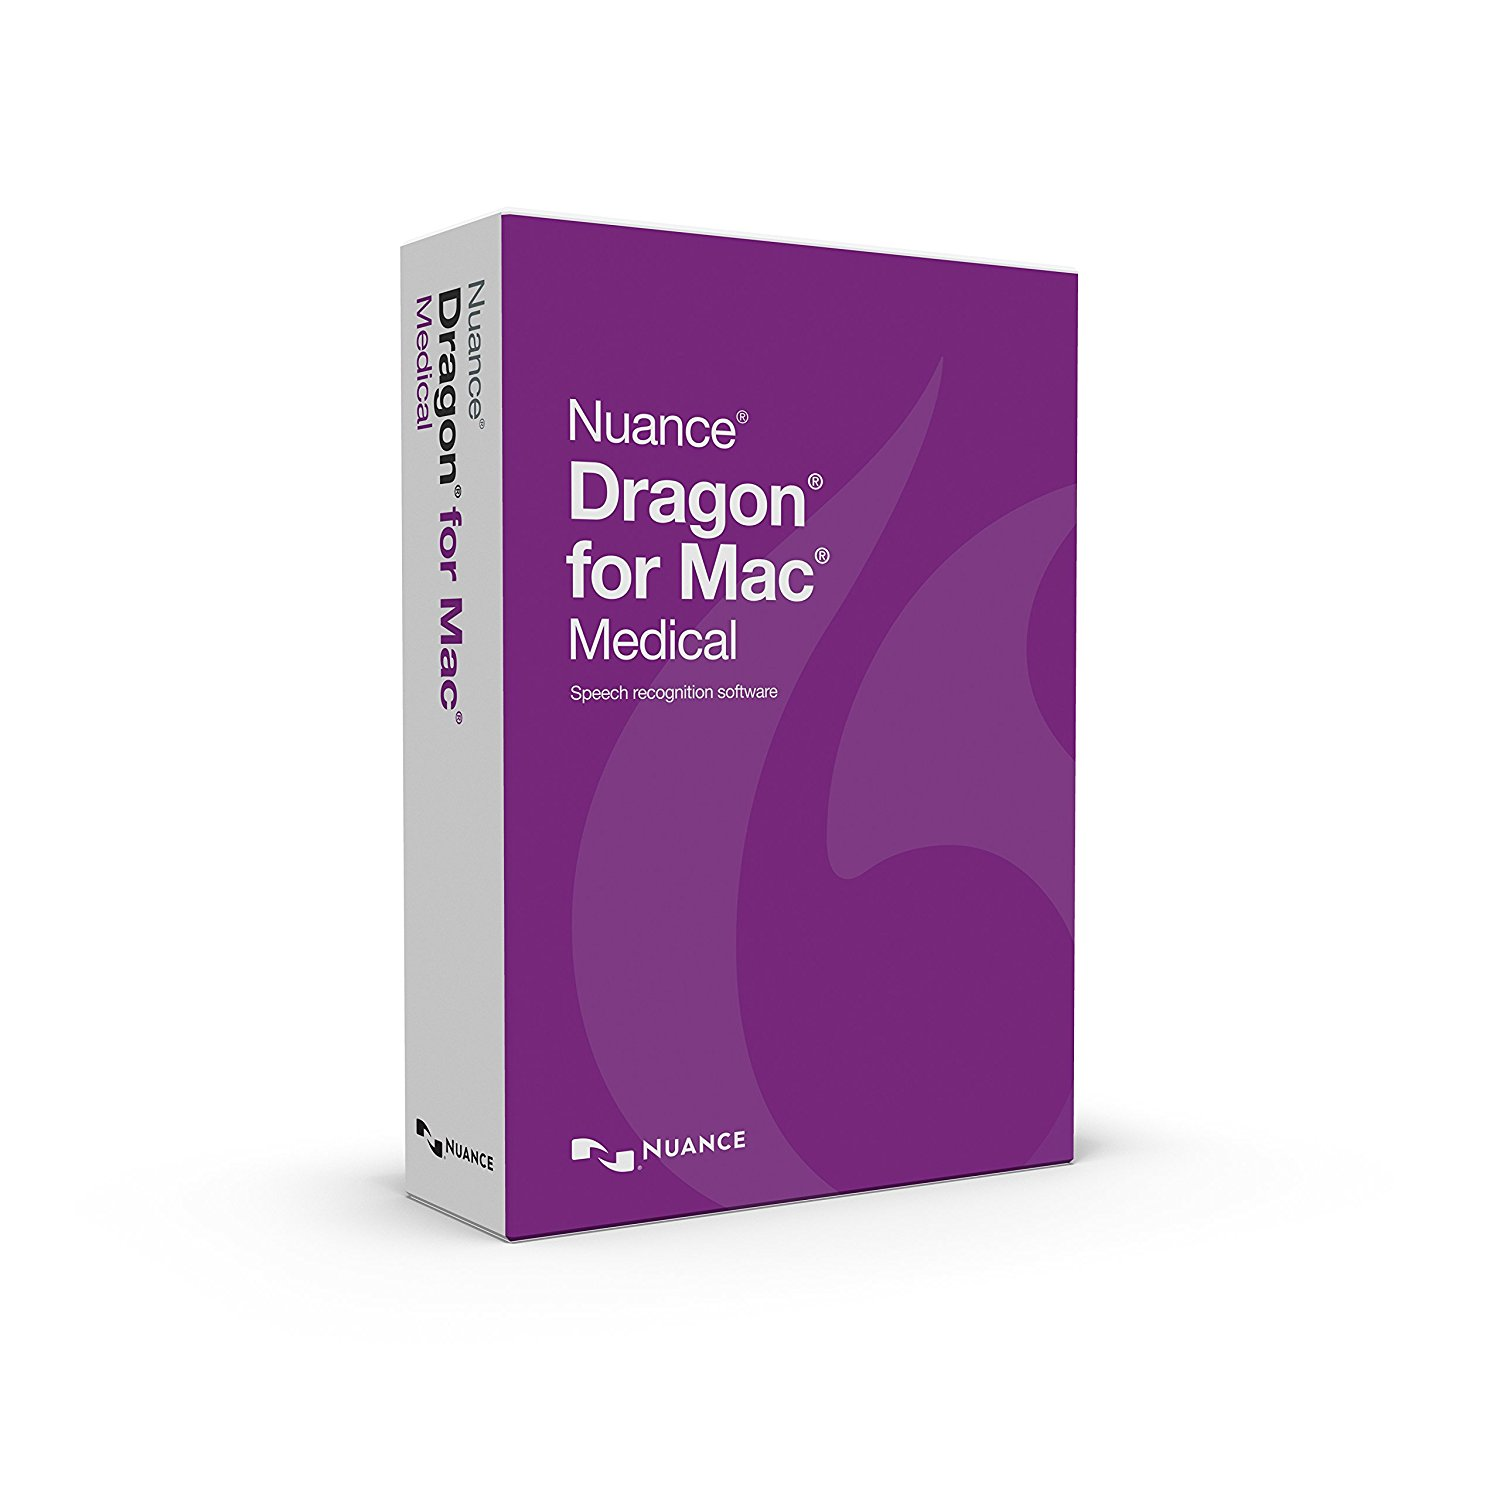 NUANCE Dragon for MAC Medical 5.0 Upgrade, English